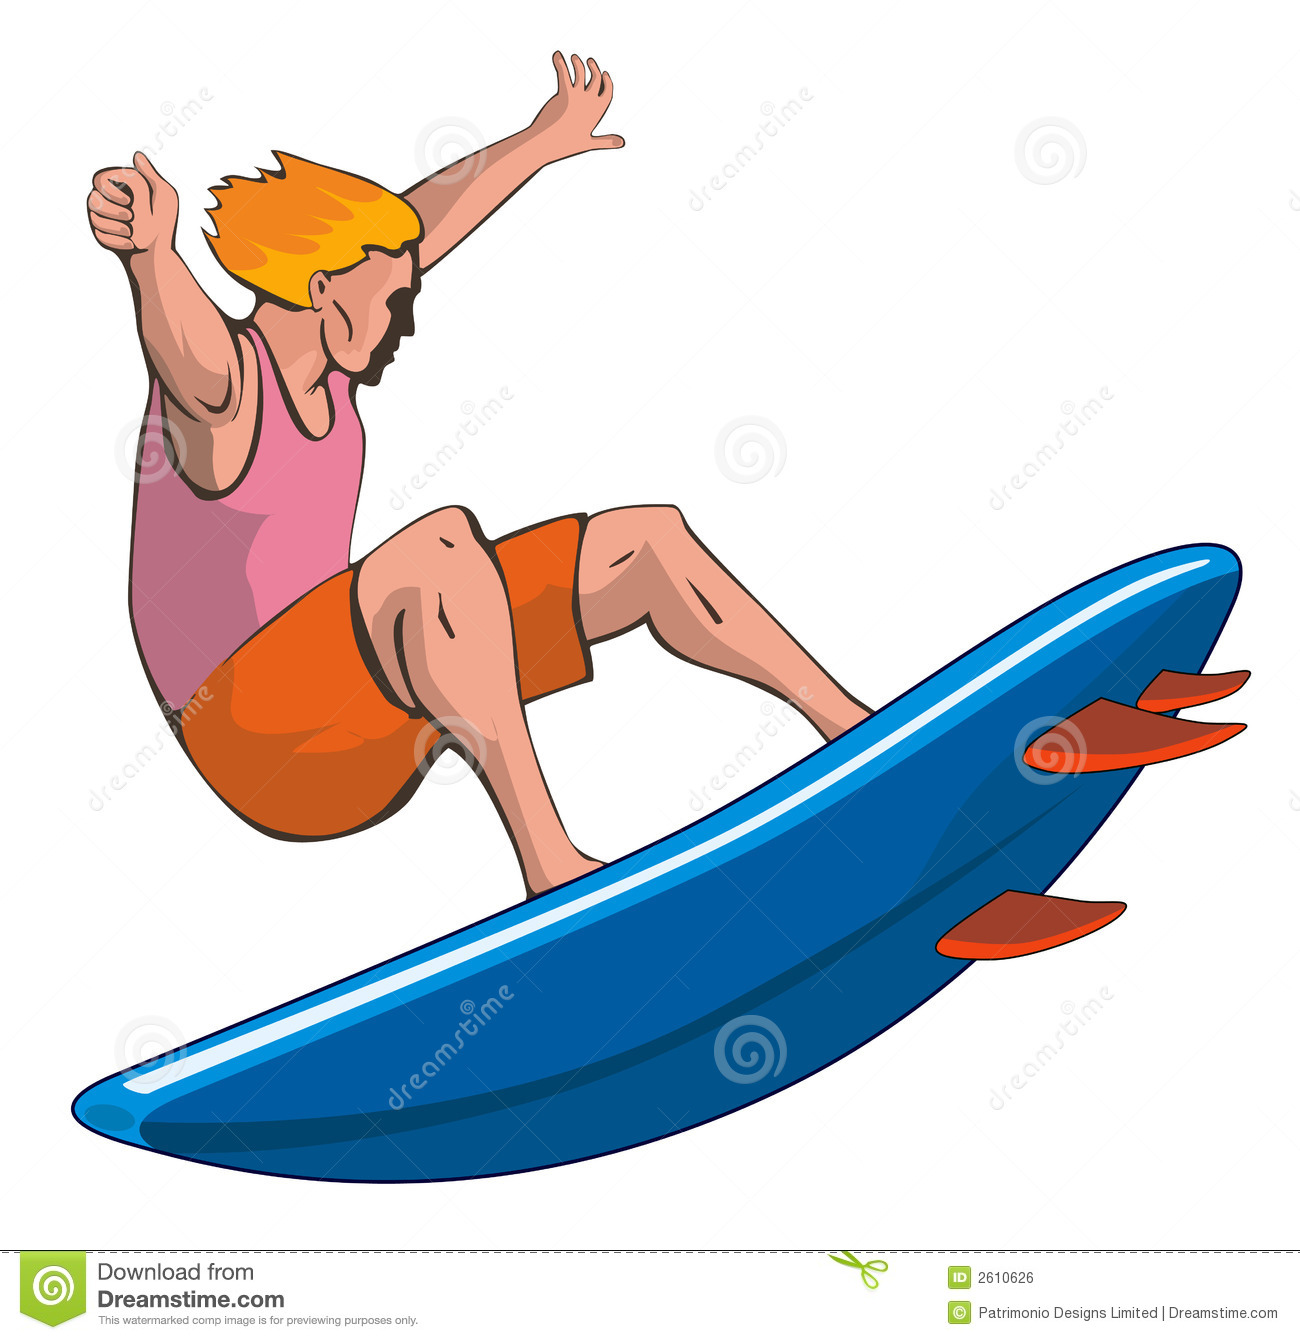 Surfing clipart #1, Download drawings